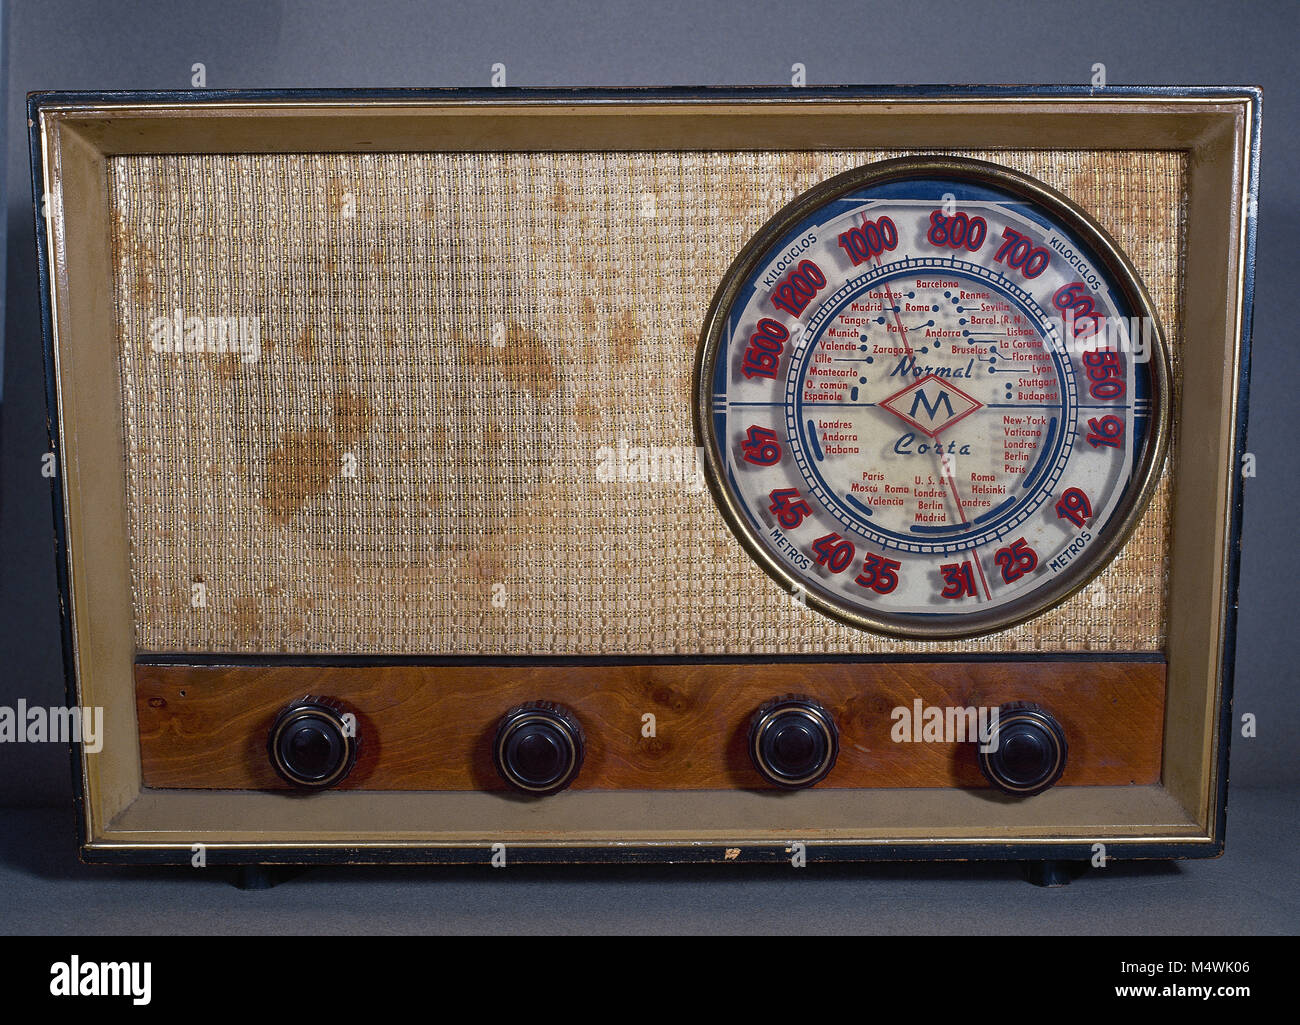 Old radio receiver. - Stock Image